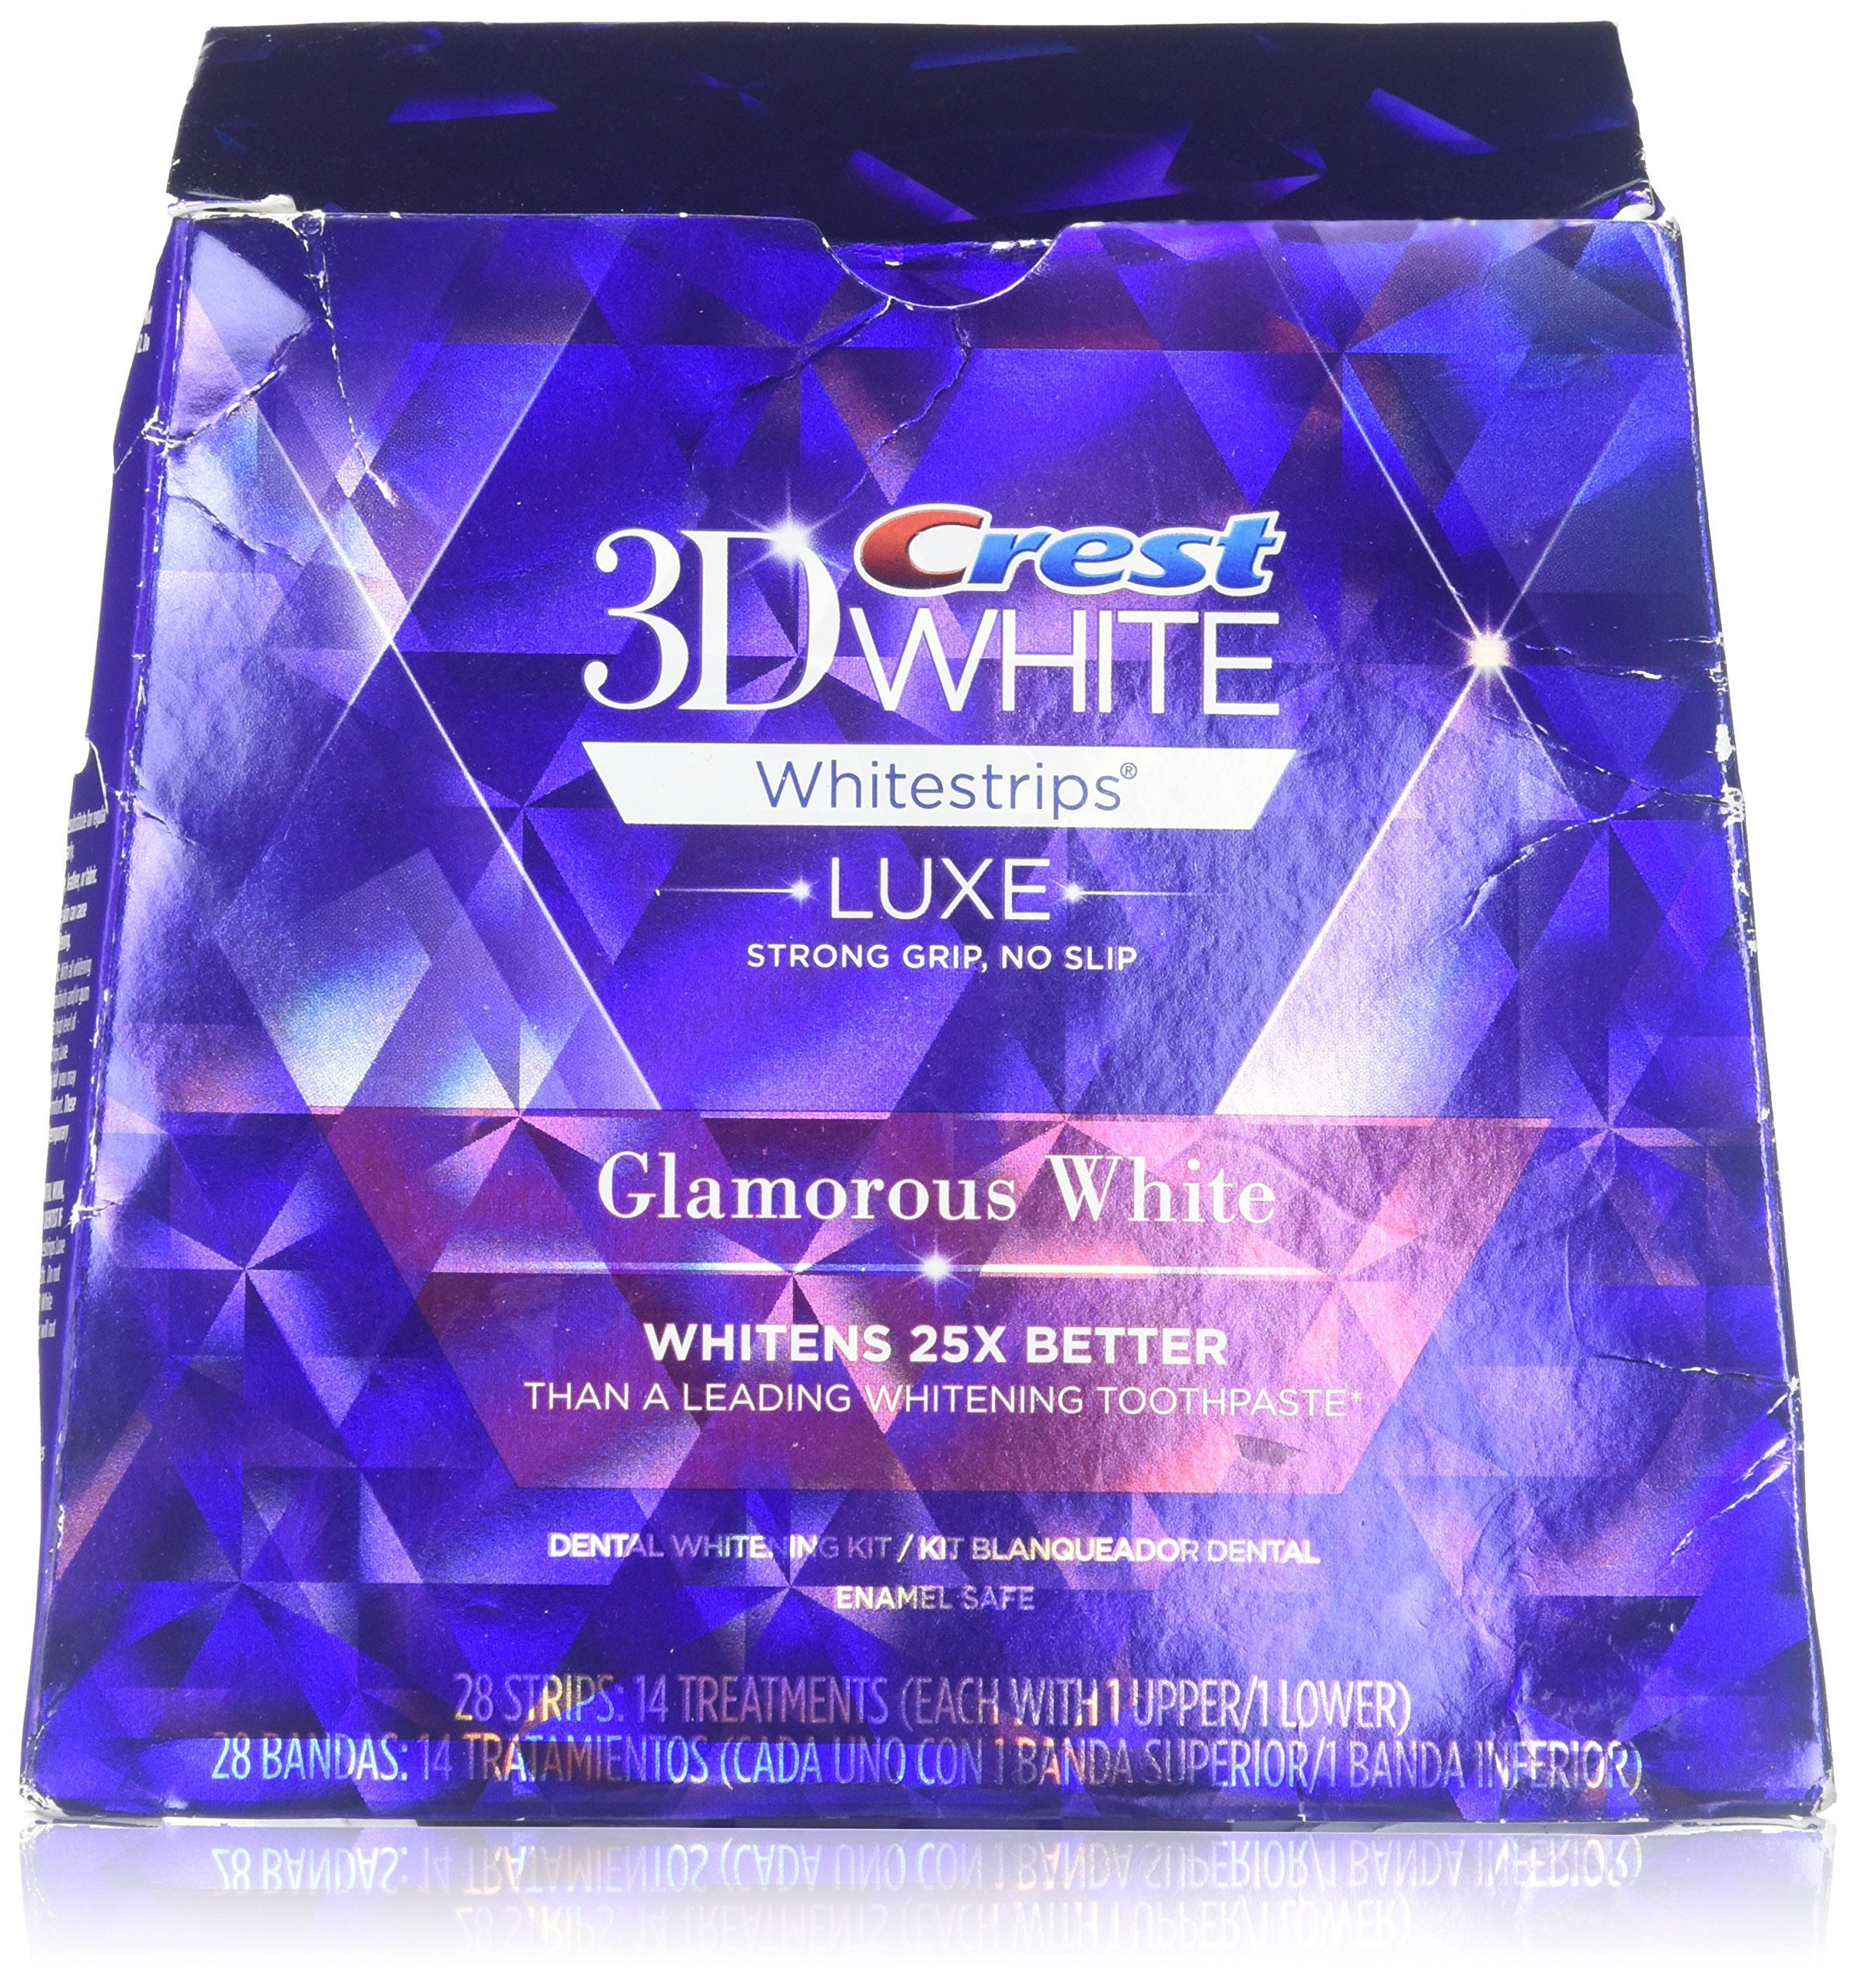 Crest 3D White Whitestrips with Advanced Seal Technology, 14 Count (Packaging May Vary) (Pack of 3 (14 treatments ea))